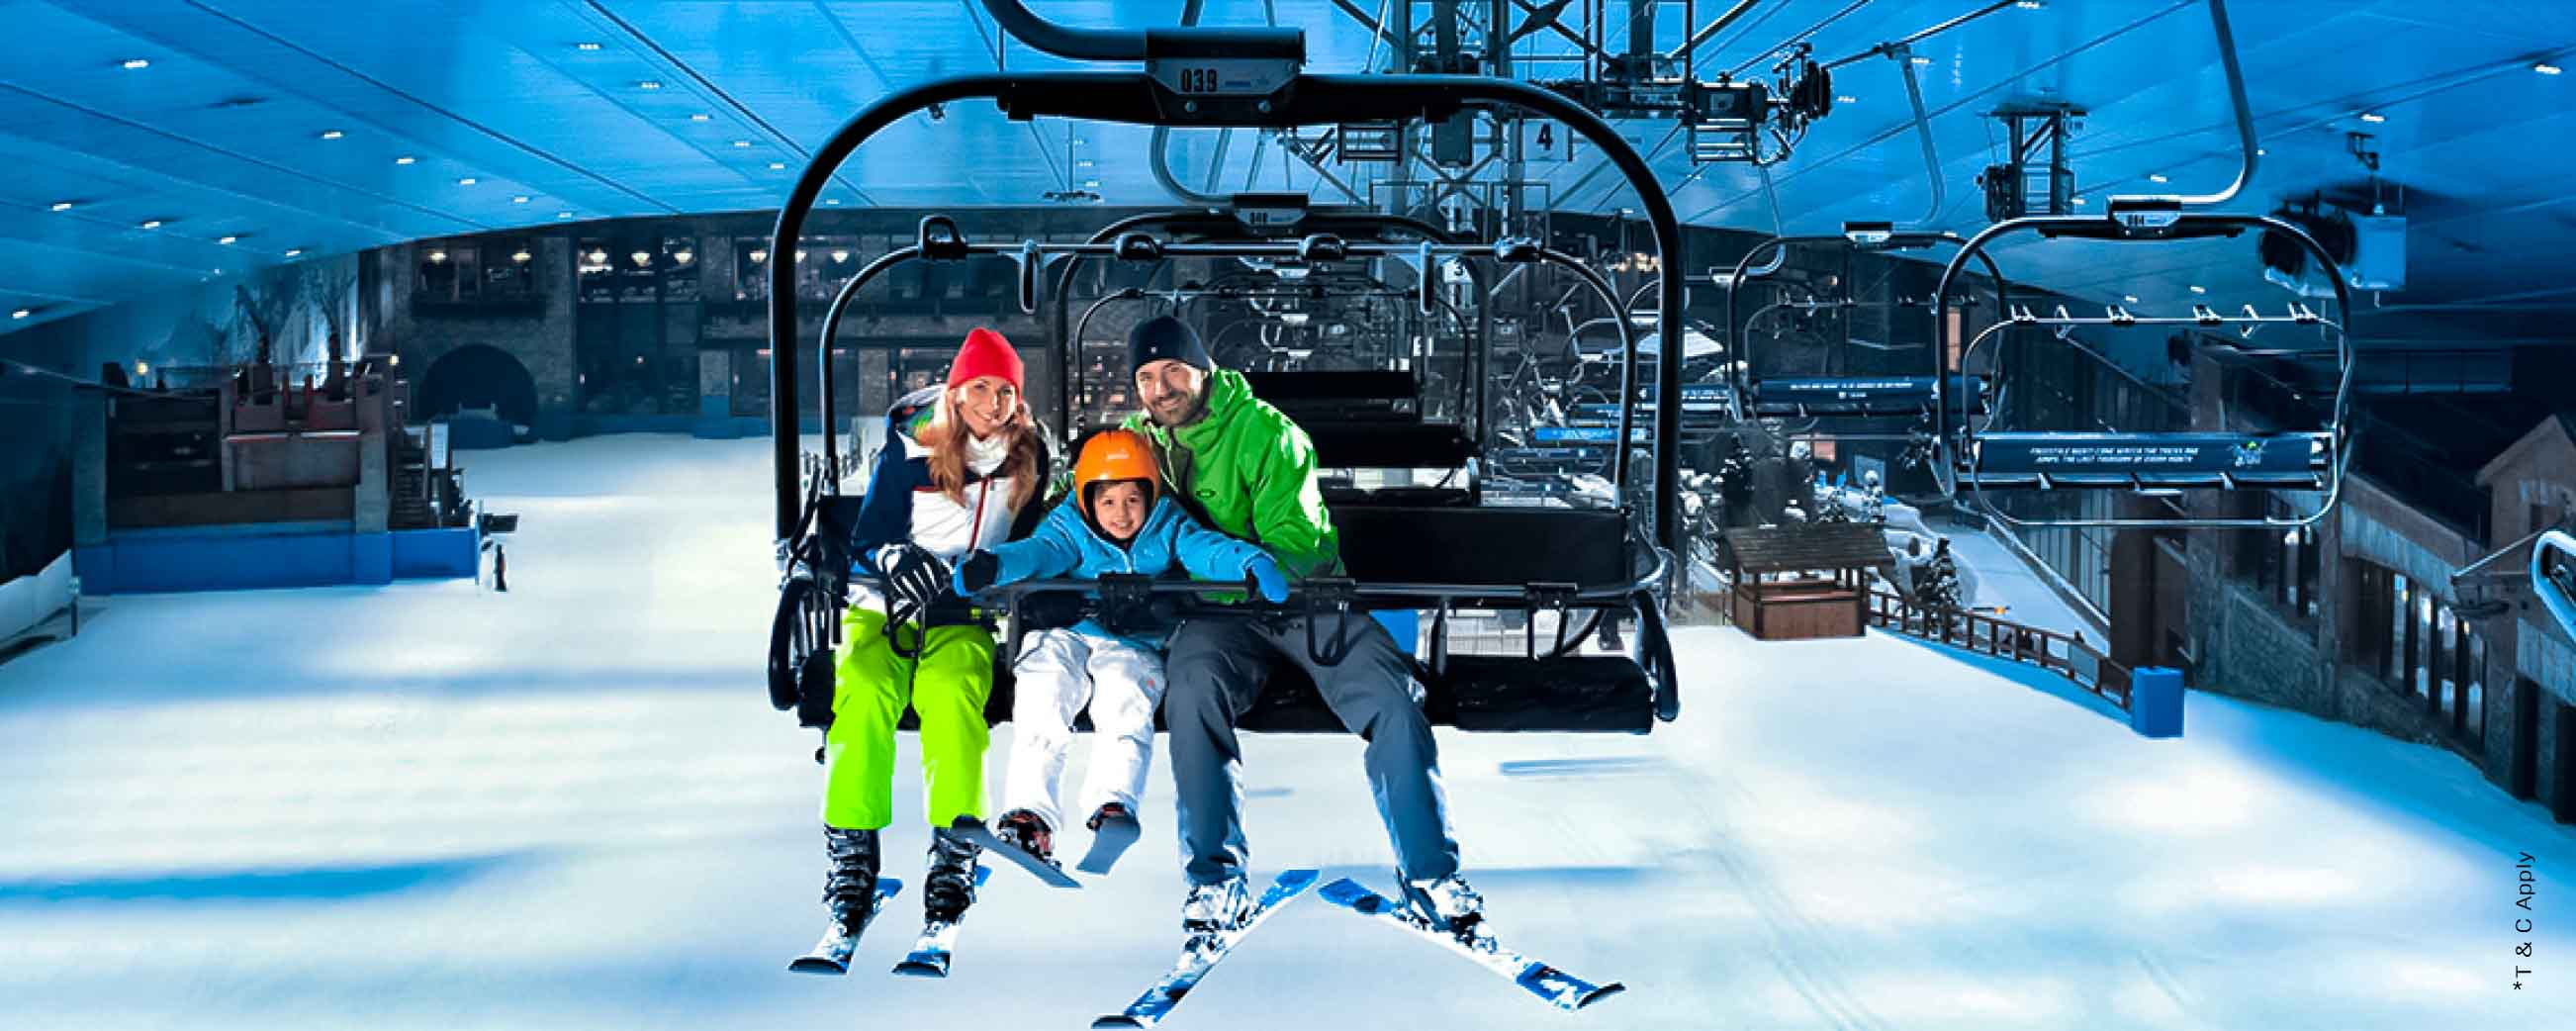 Ski Dubai Snow Park Smart Travel